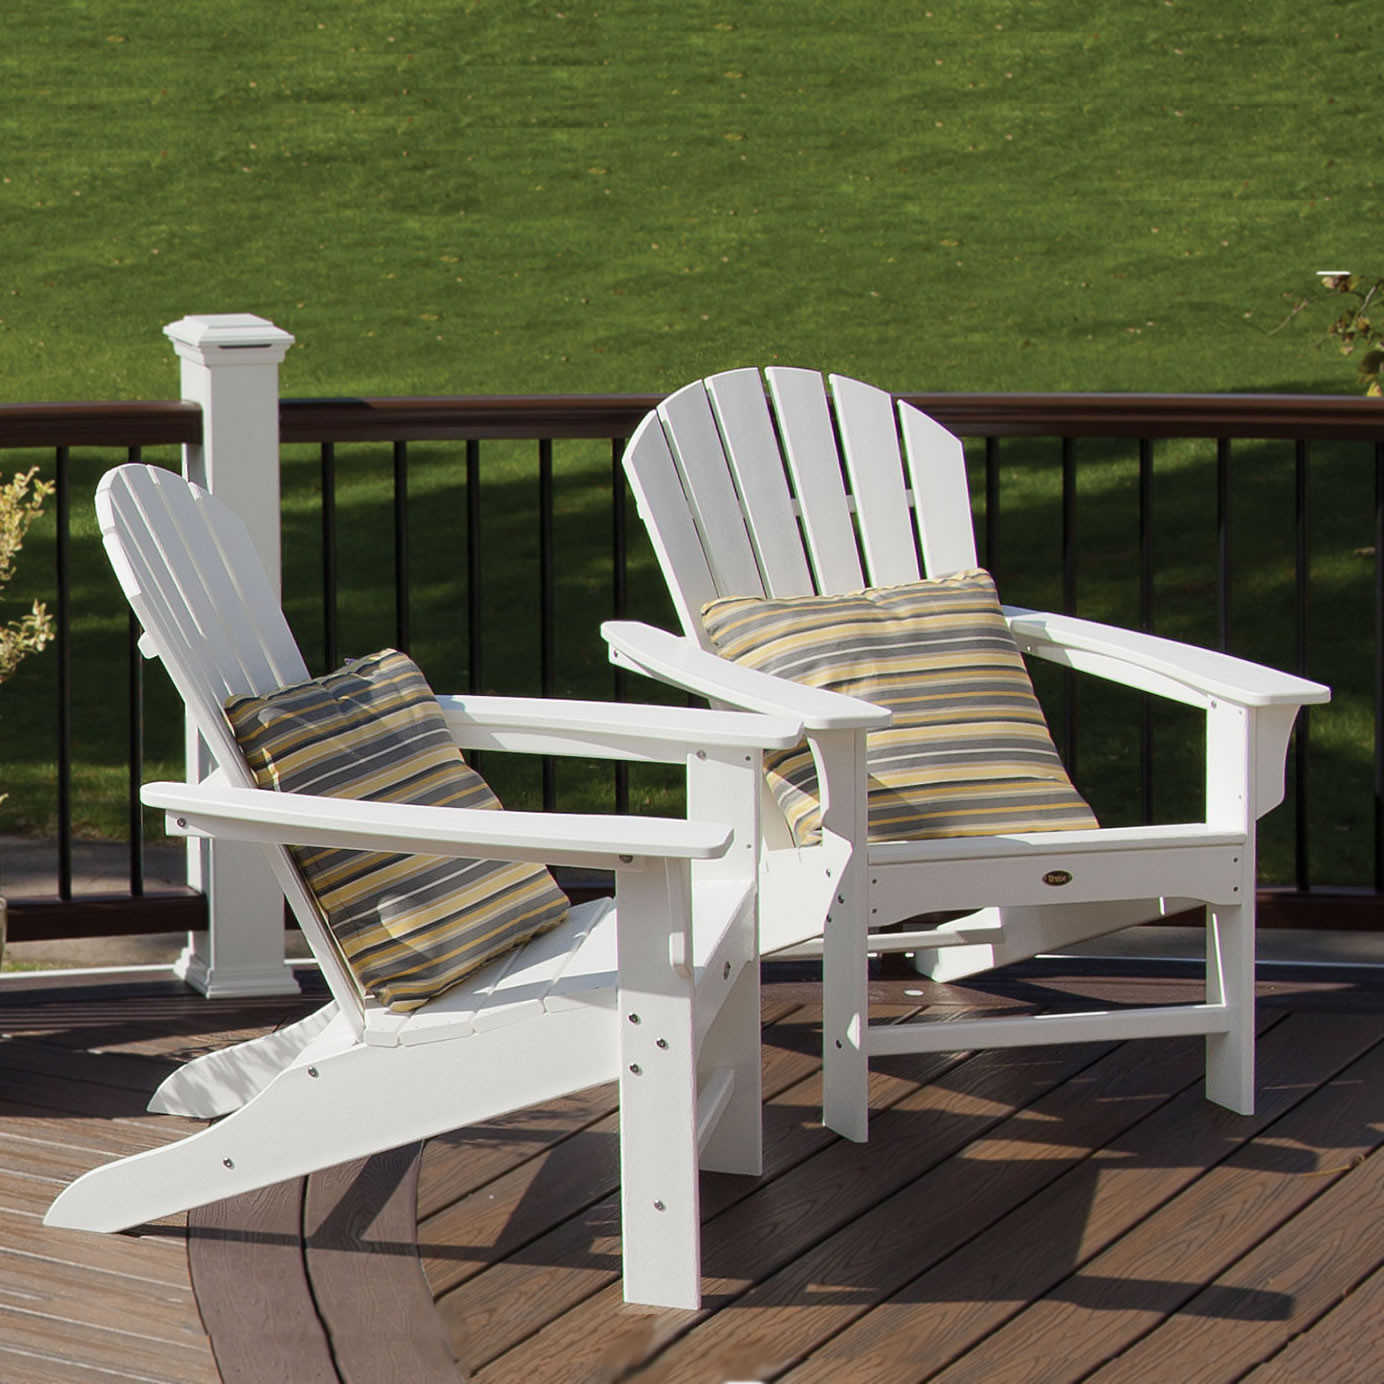 Trex® Outdoor Furniture Cape Cod Adirondack Chair